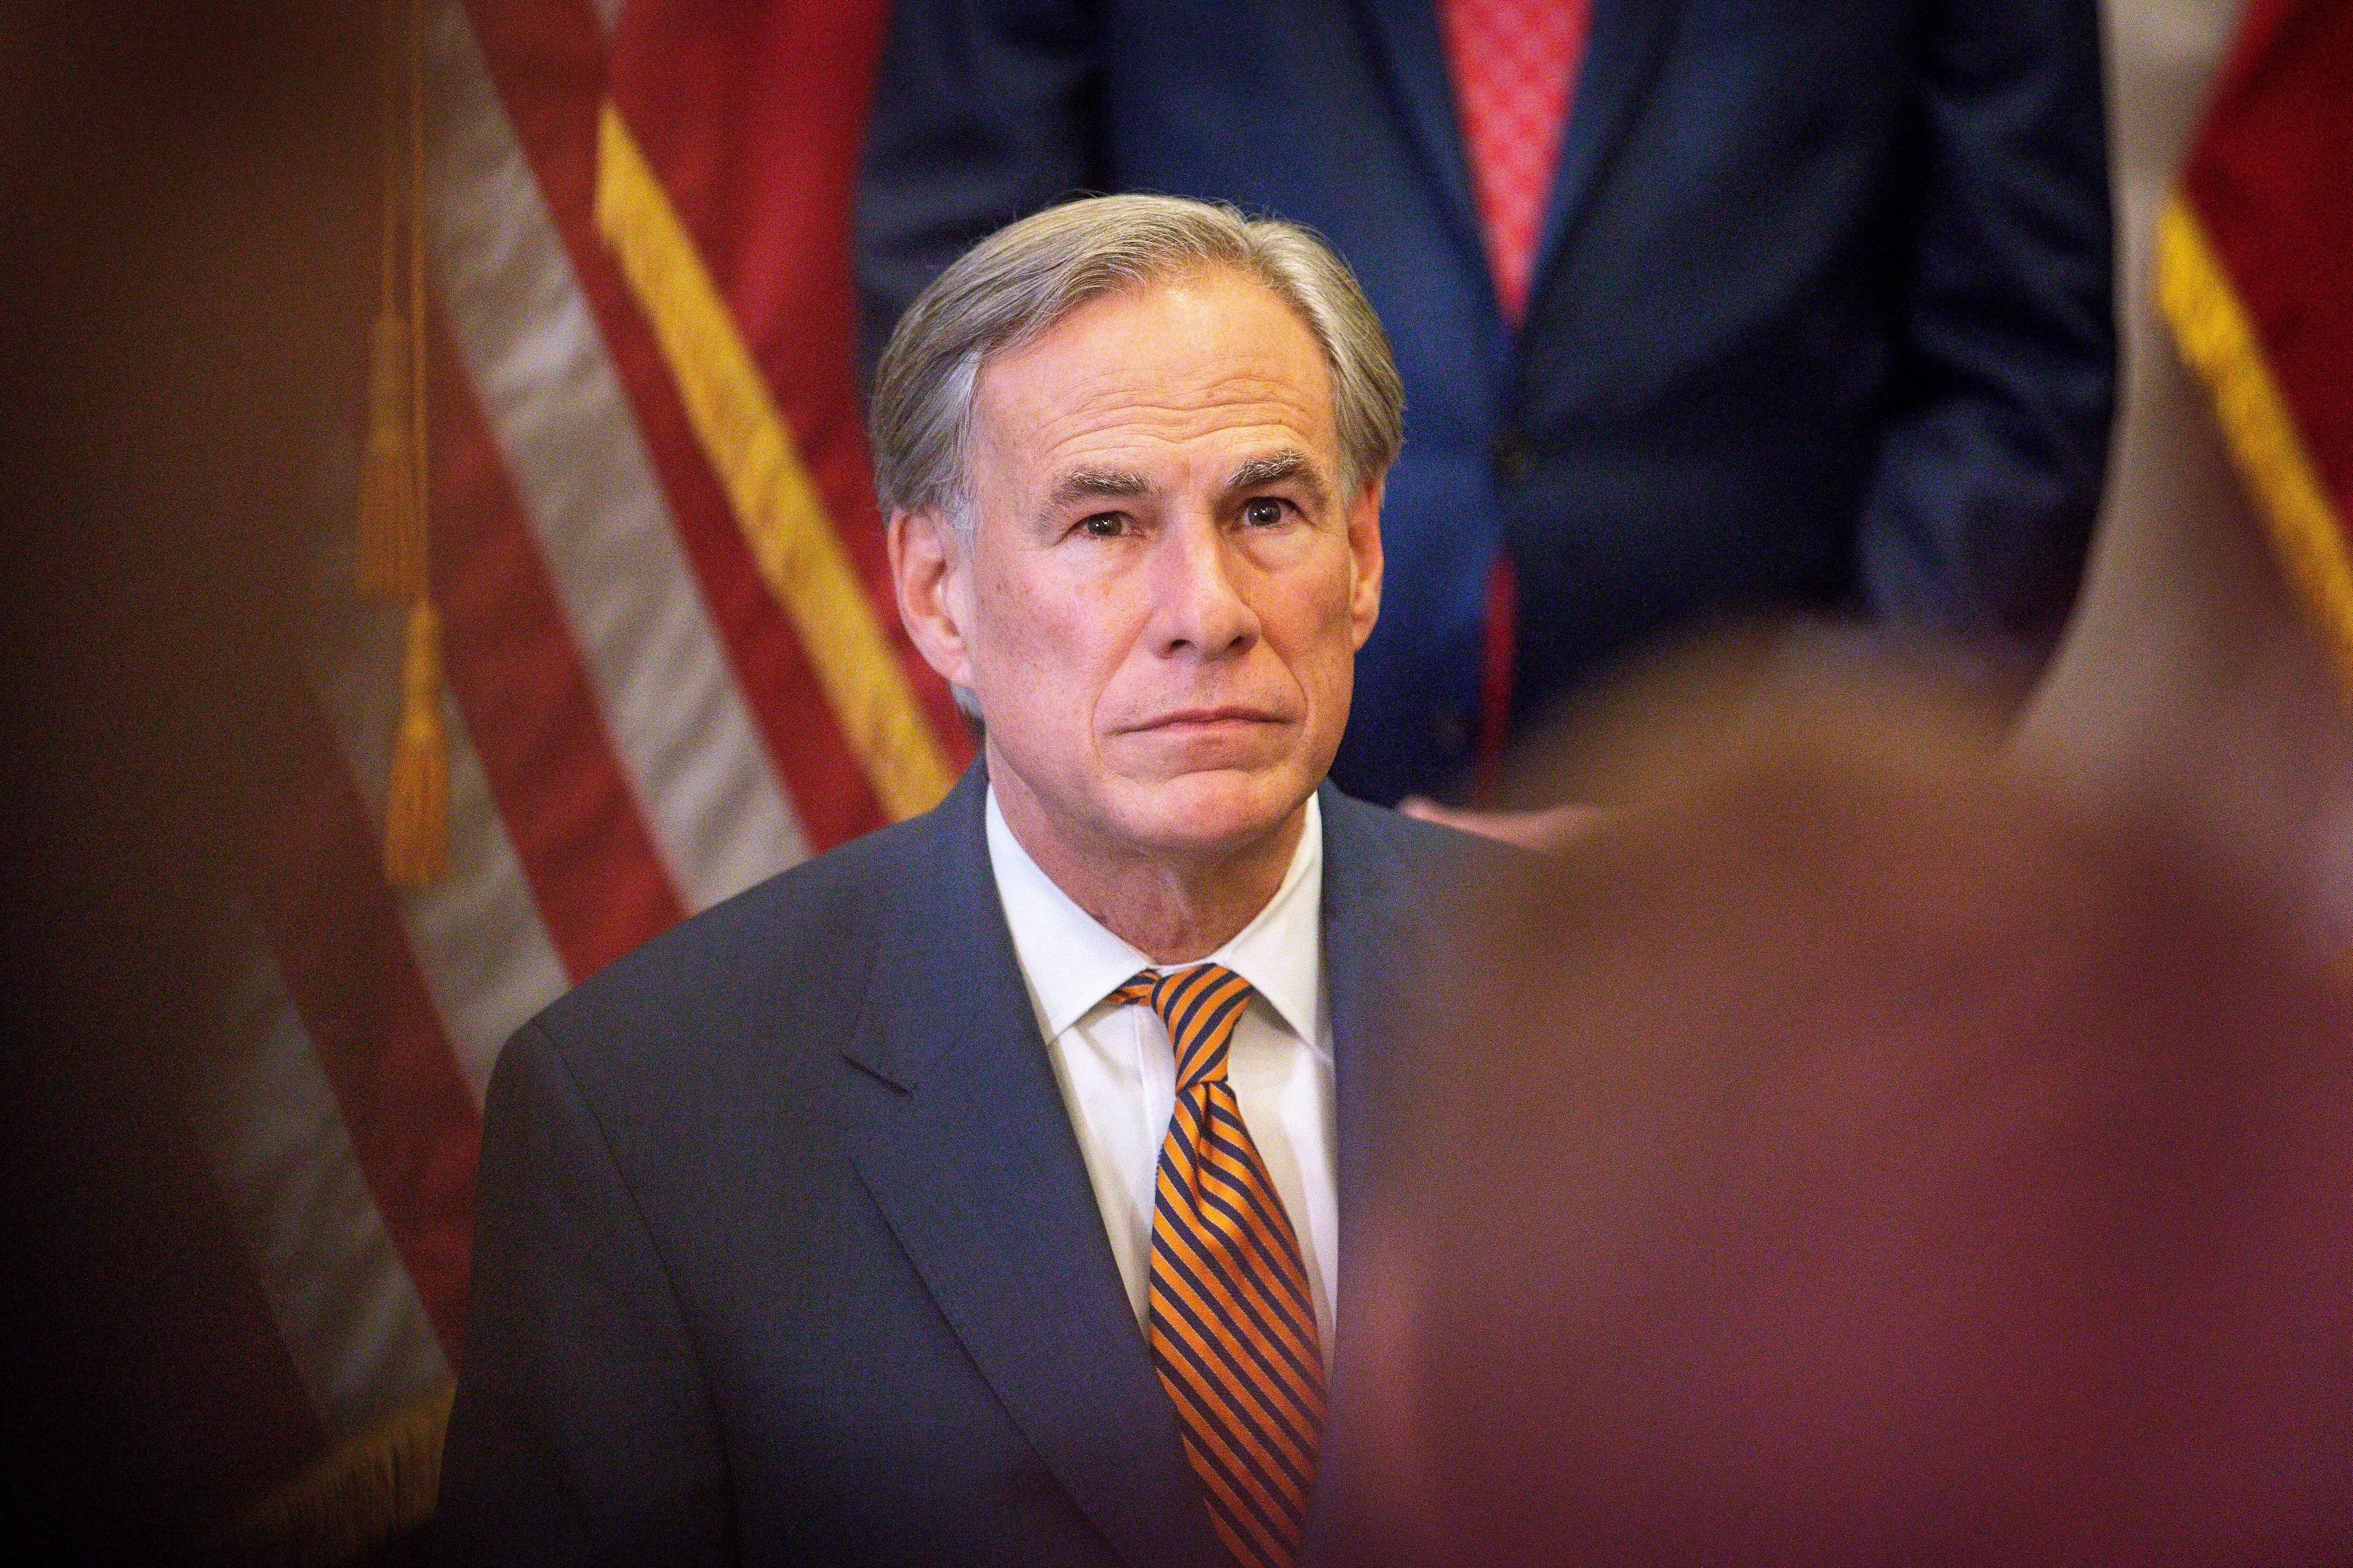 Greg Abbott, wearing a suit and with American flags behind him, is seen facing an audience